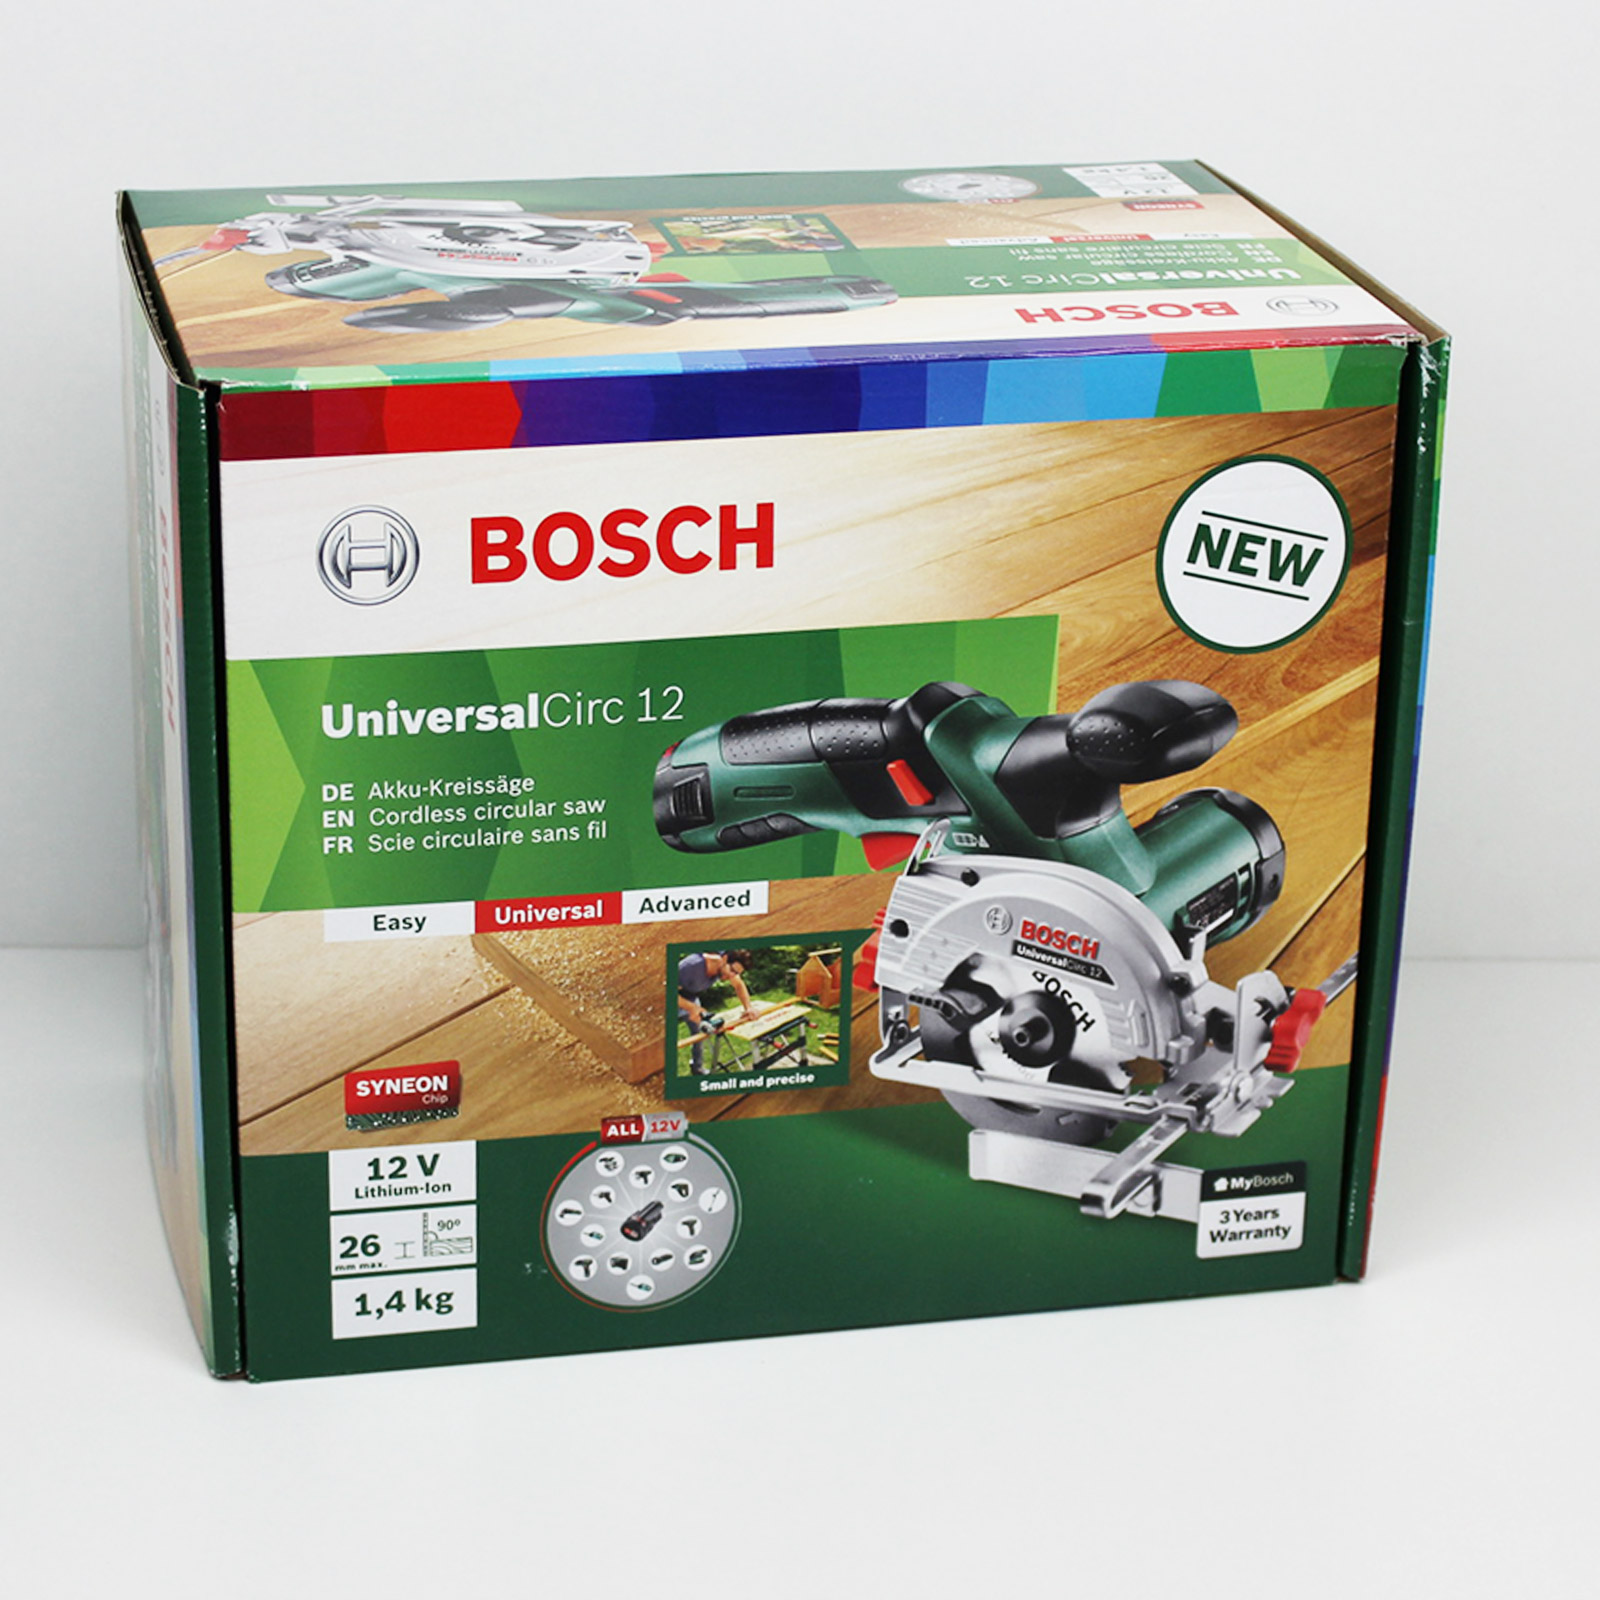 bosch 12 volt akku mini handkreiss ge universalcirc 12 06033c7002 diy. Black Bedroom Furniture Sets. Home Design Ideas